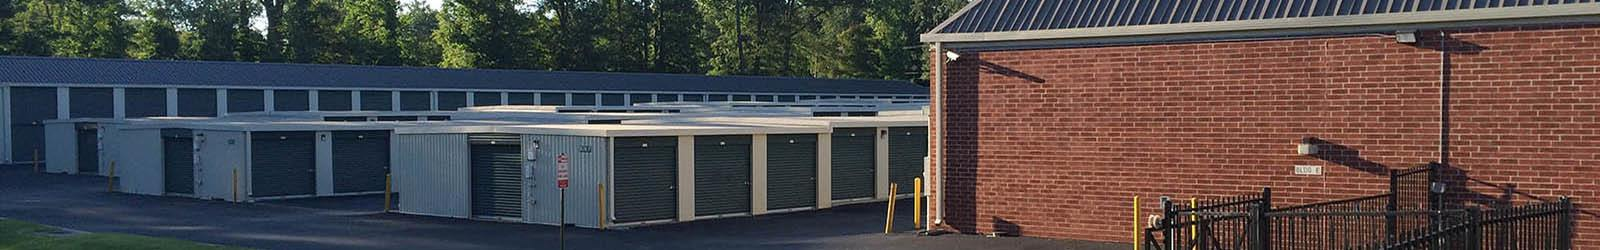 Self storage units in Richmond